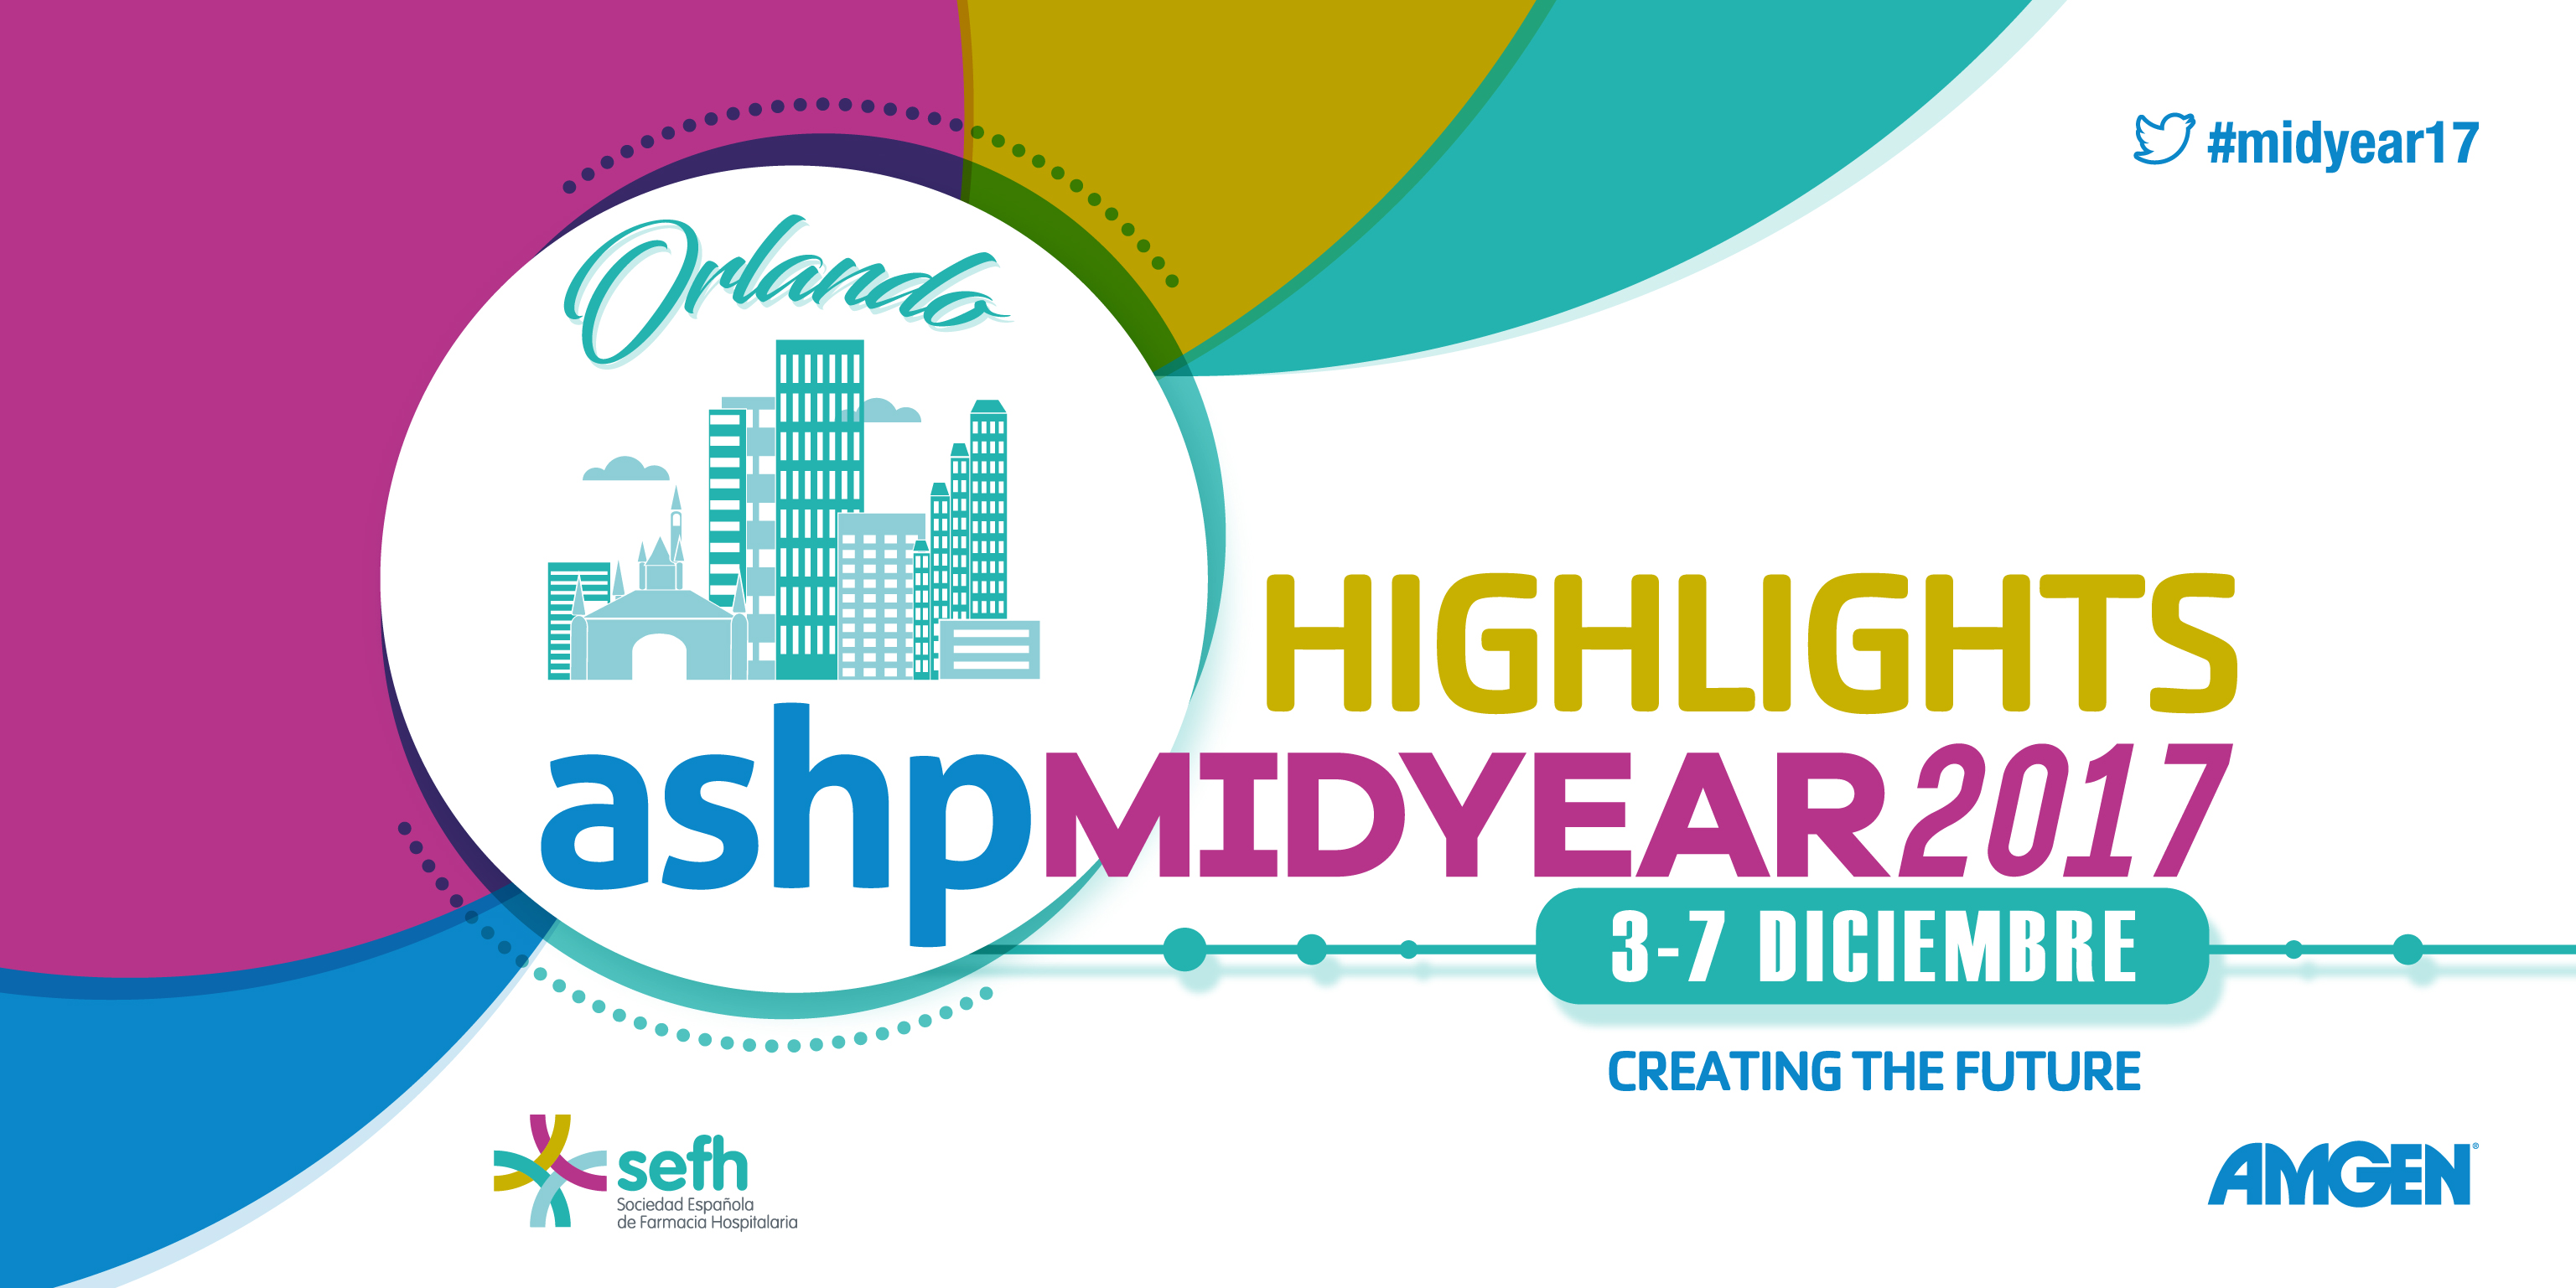 ASHP Midyear 2017 Highlights y Jornada Post-Midyear